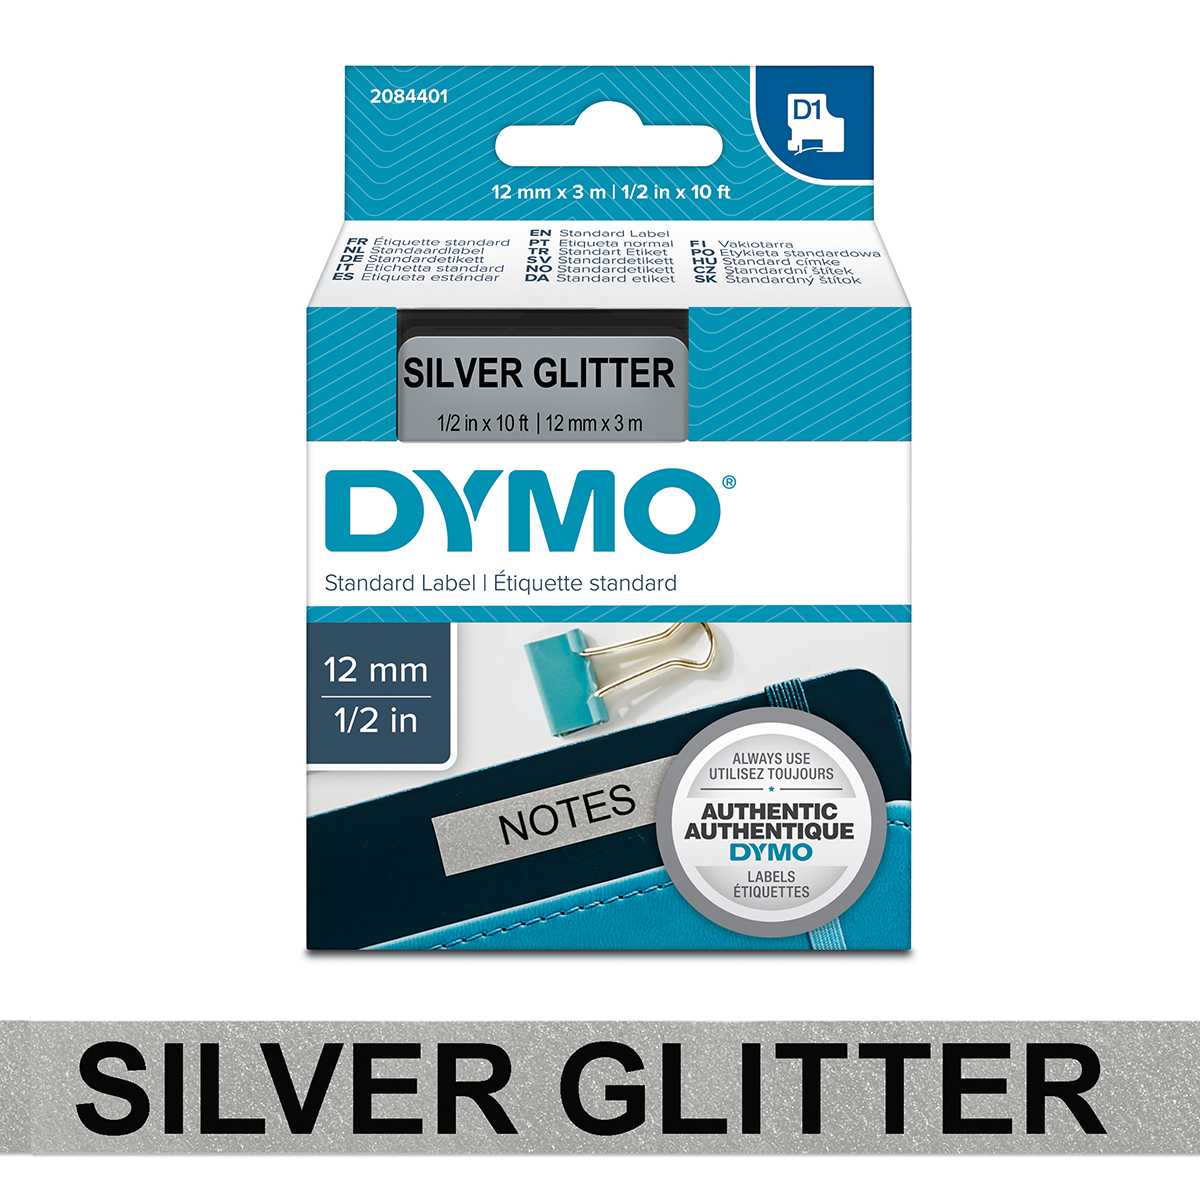 Dymo 2084401 D1 12mm x 3m Black on Silver Glitter Tape